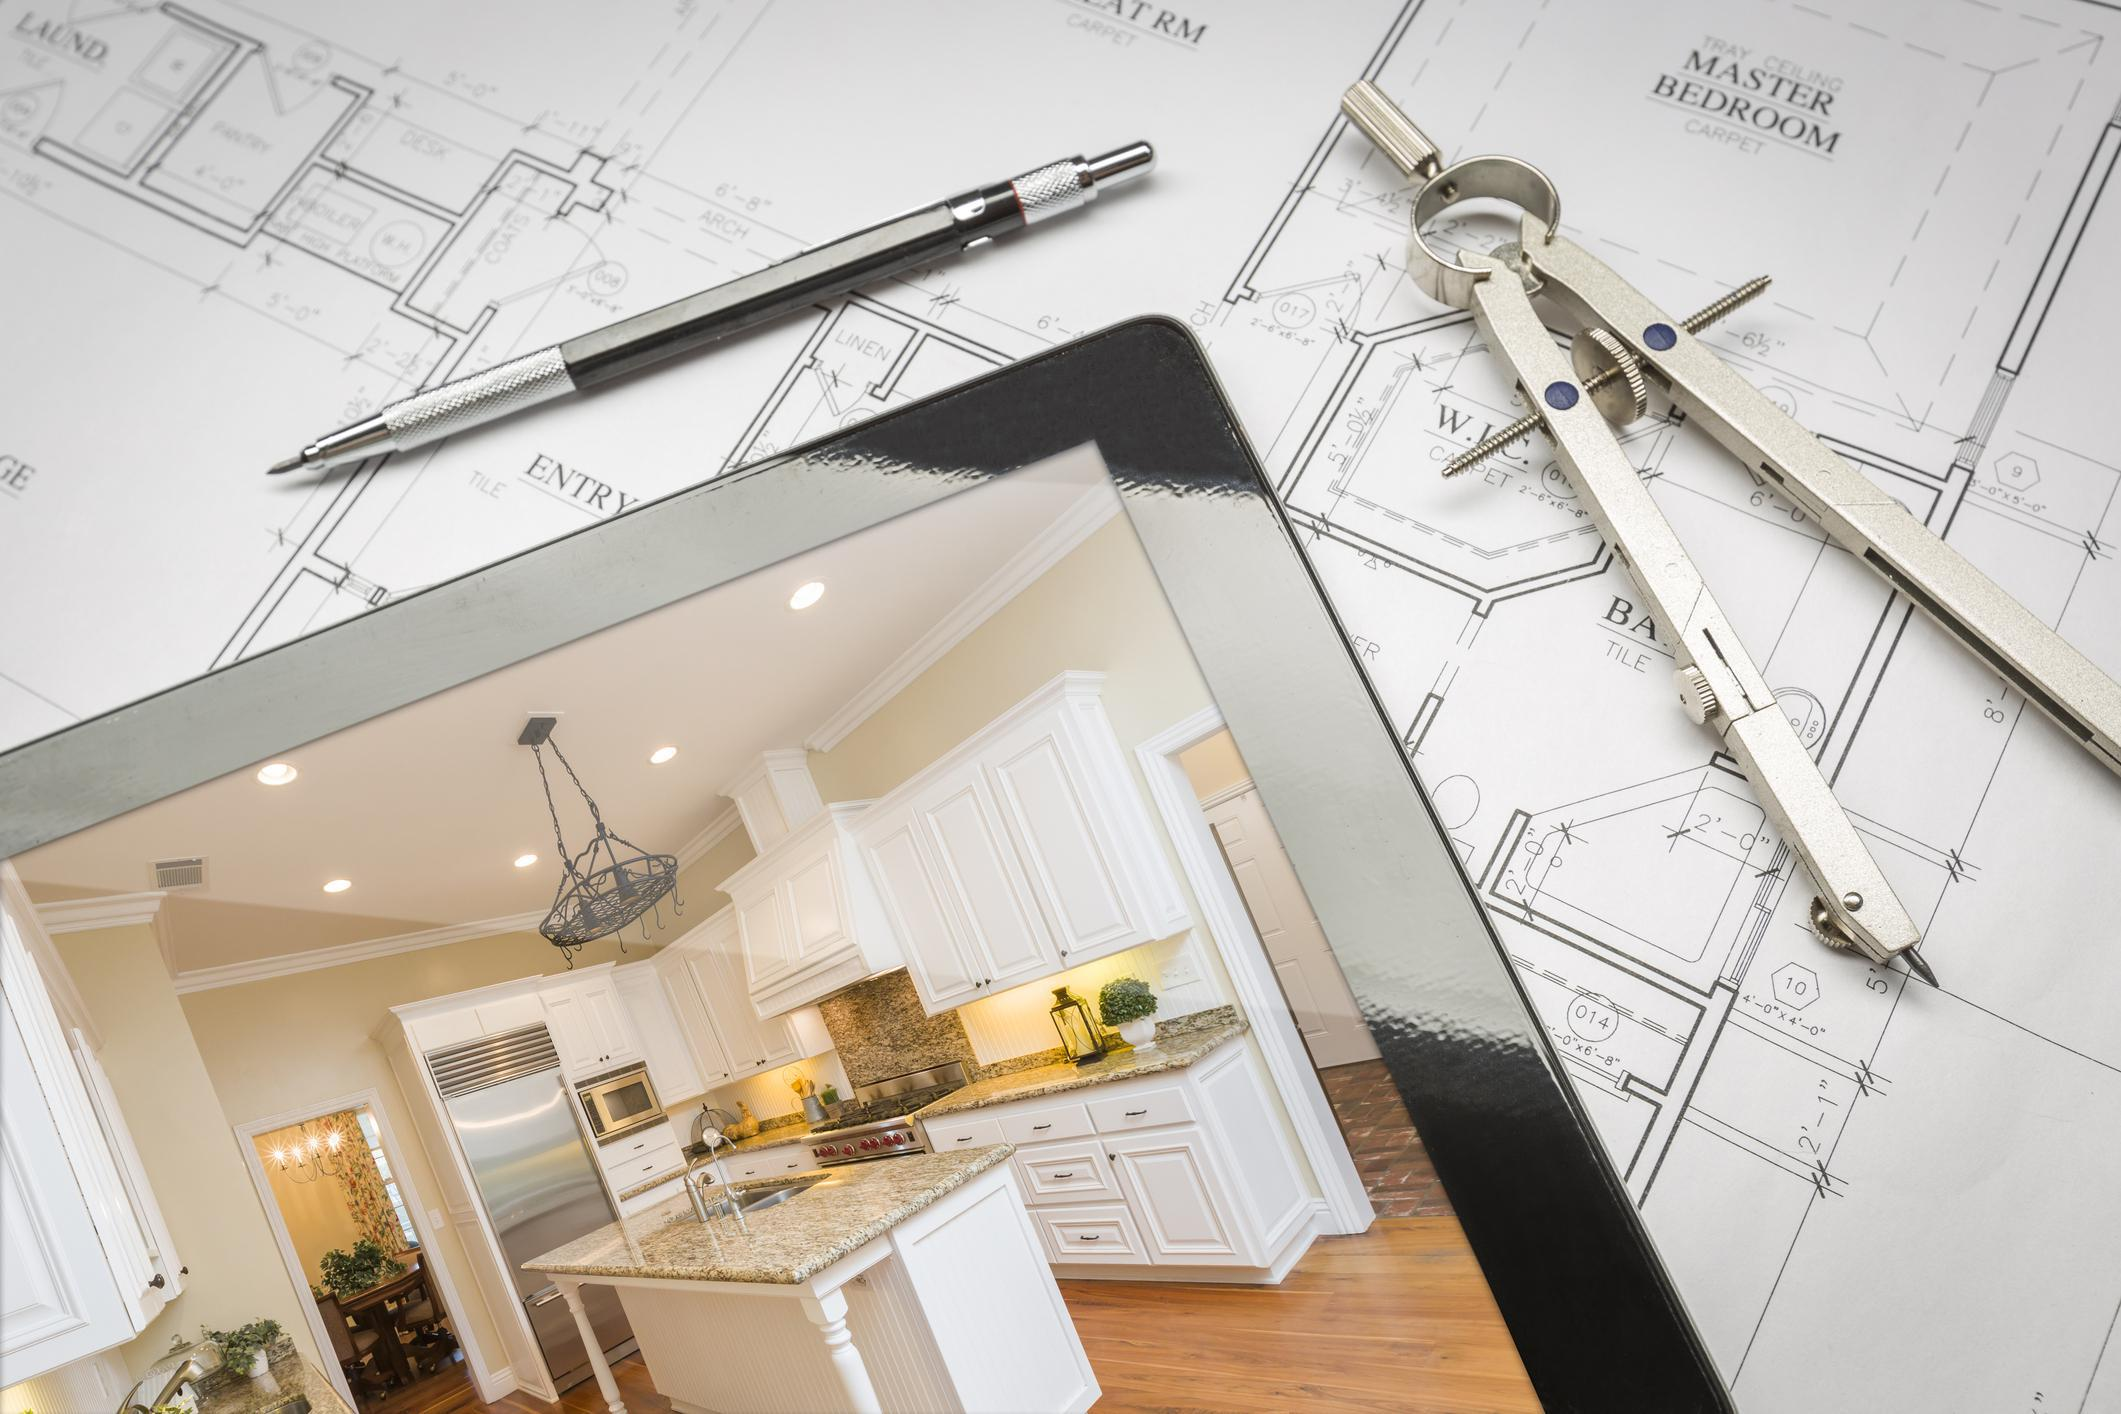 Contrators and builders tools